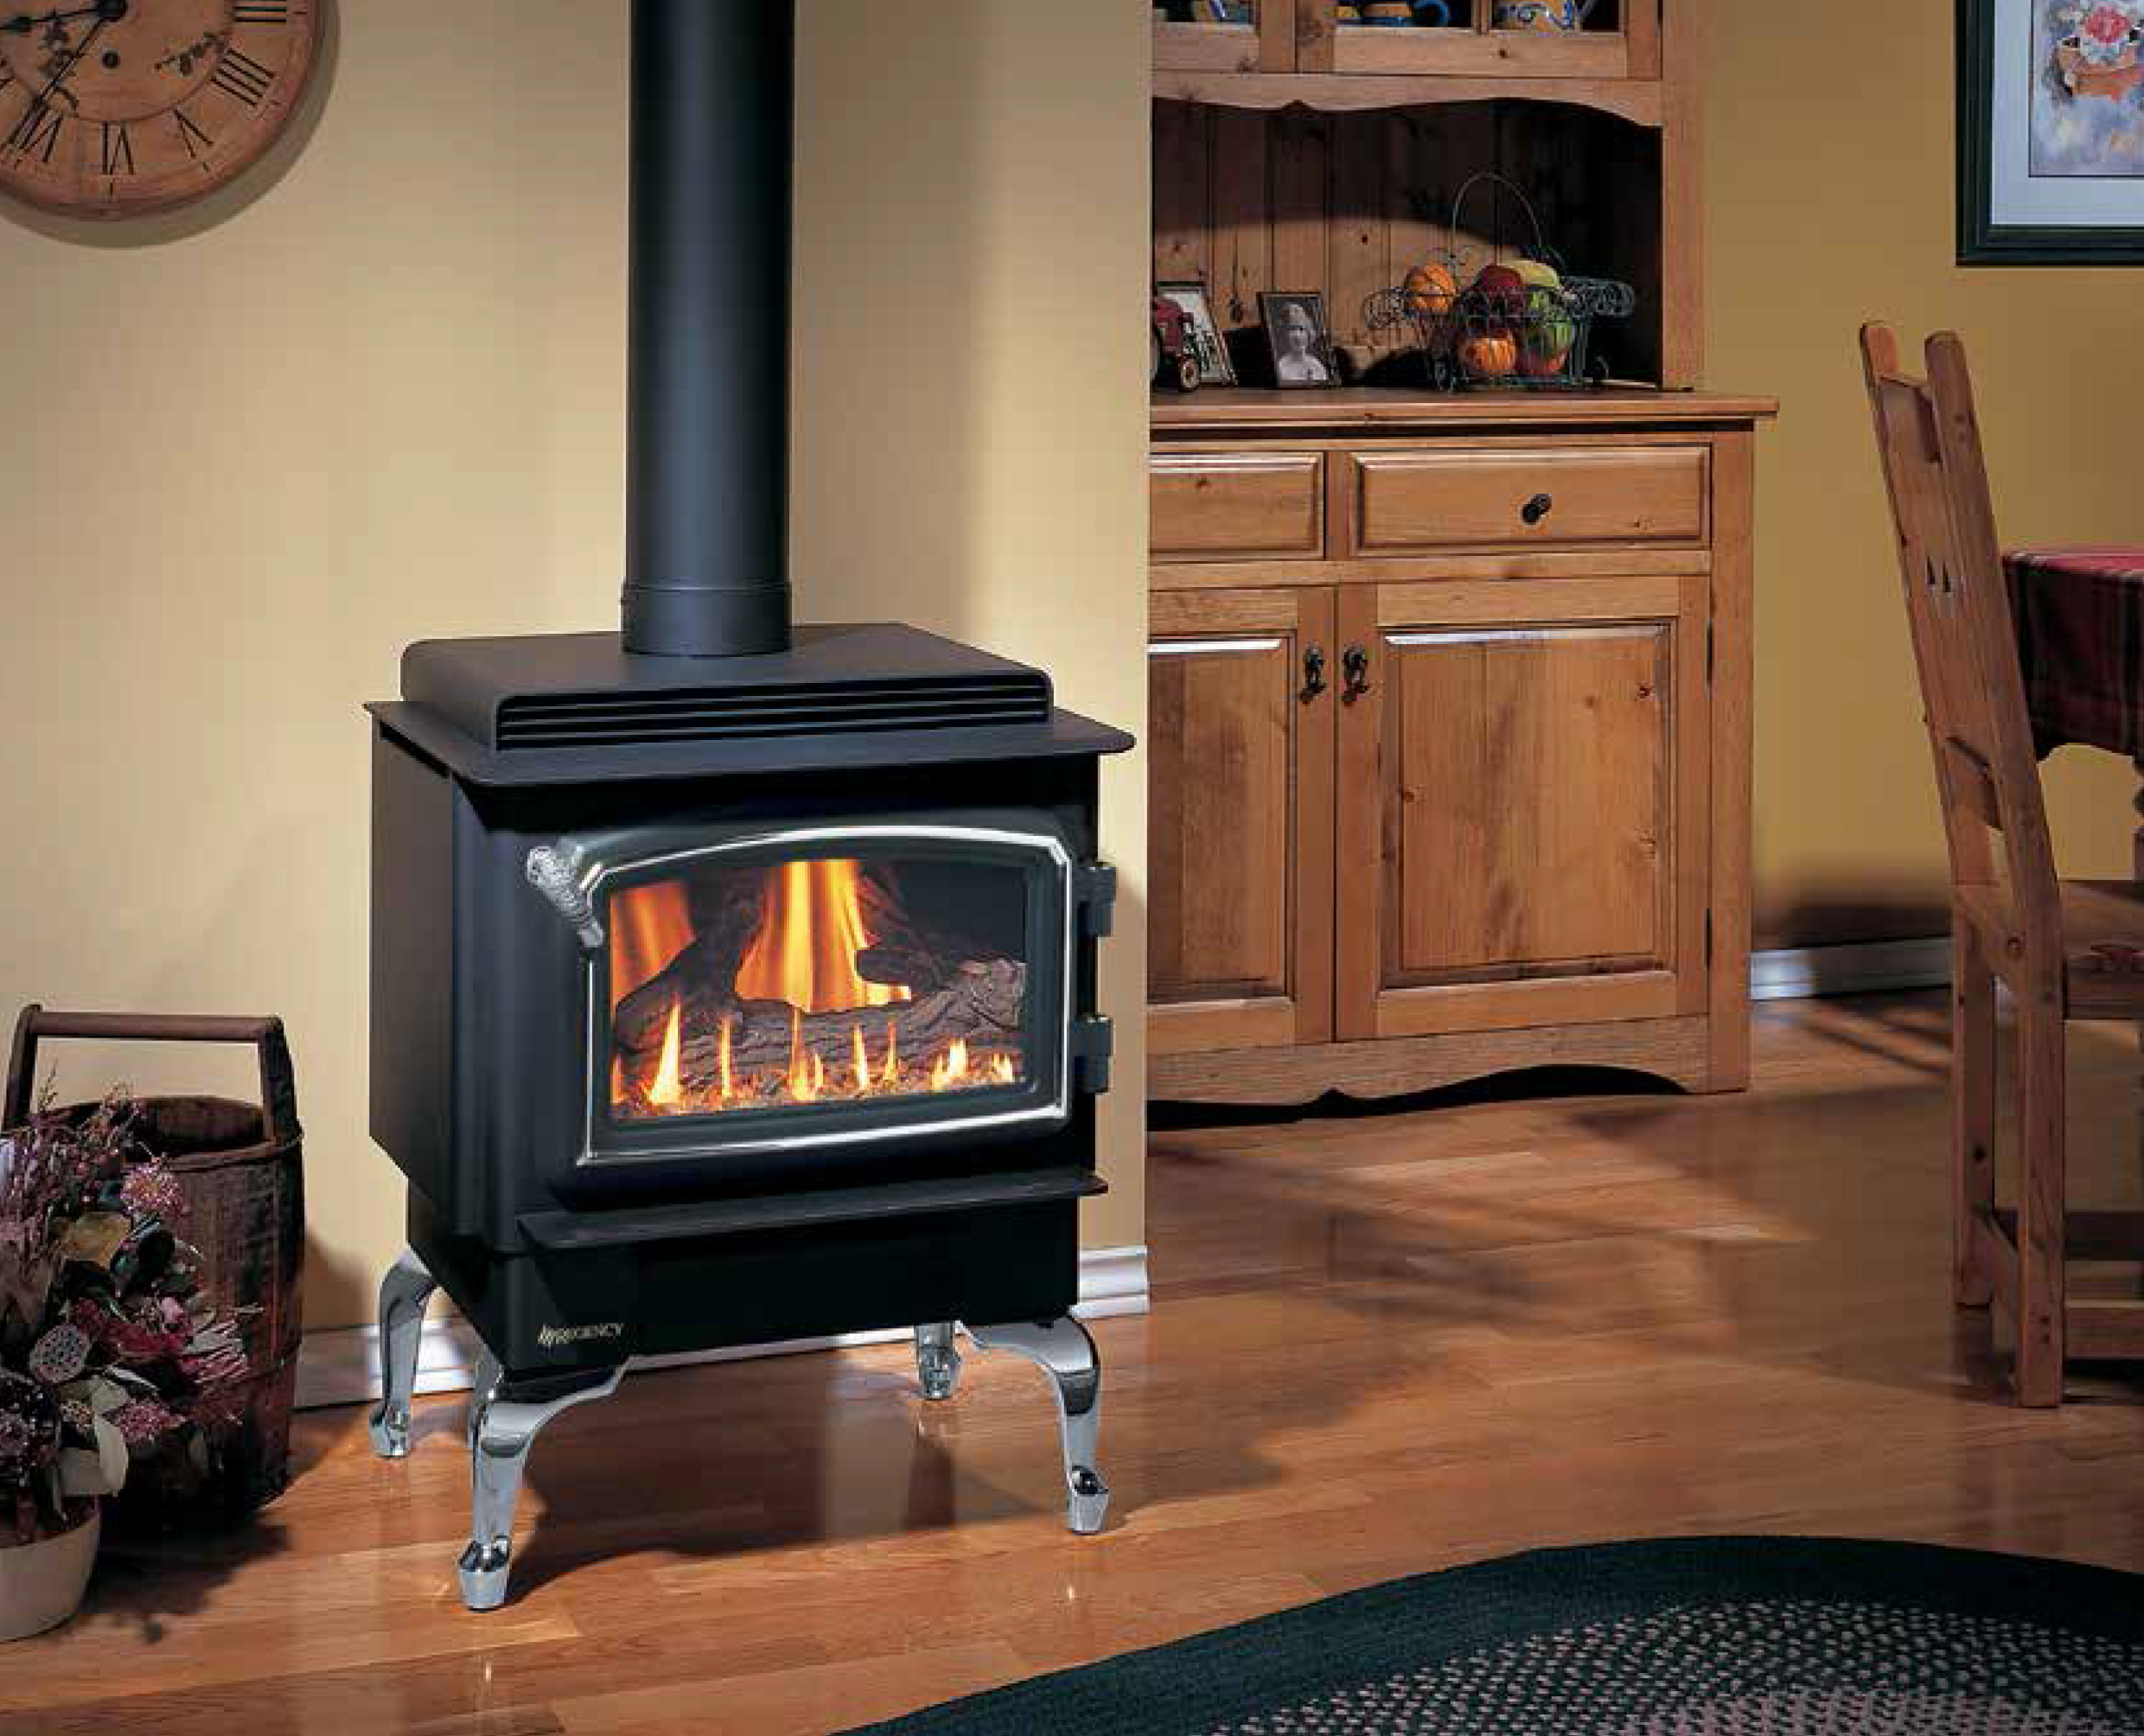 Freestanding gas fires